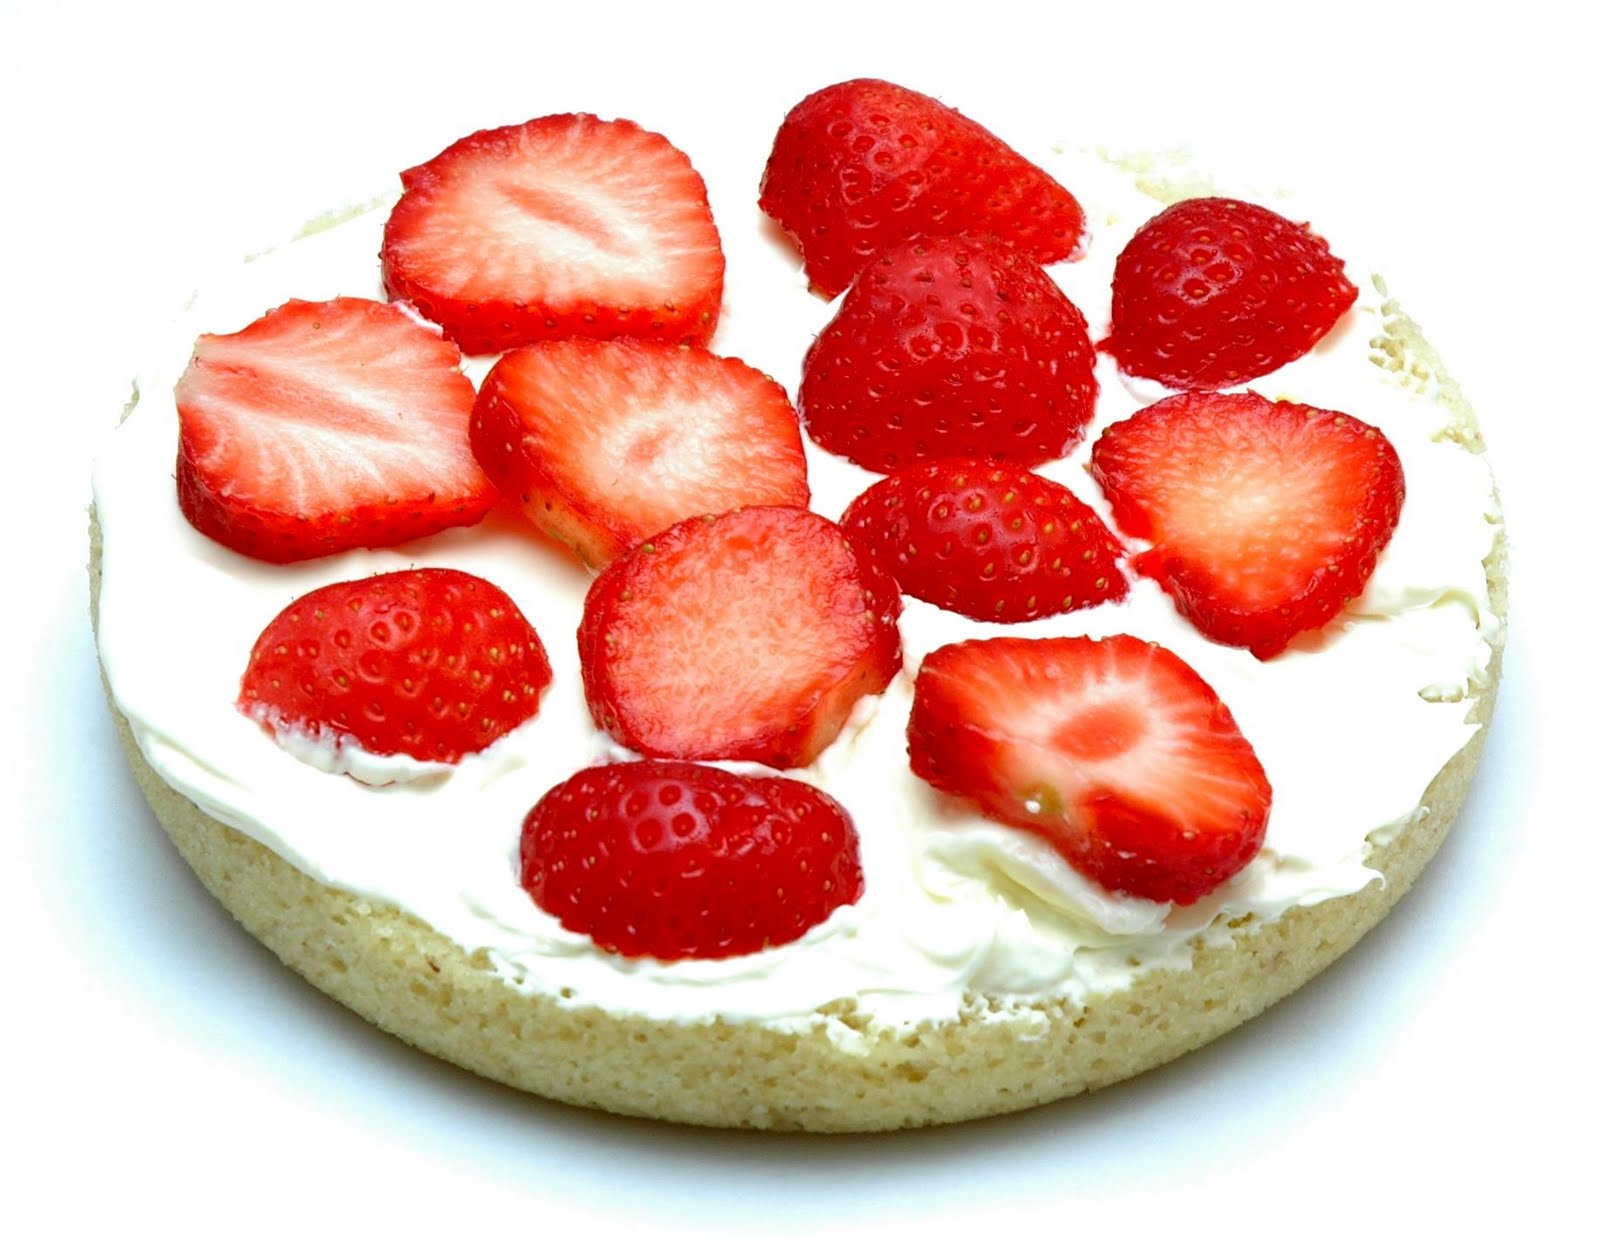 The Low Carb Diabetic Strawberry Sponge Cake